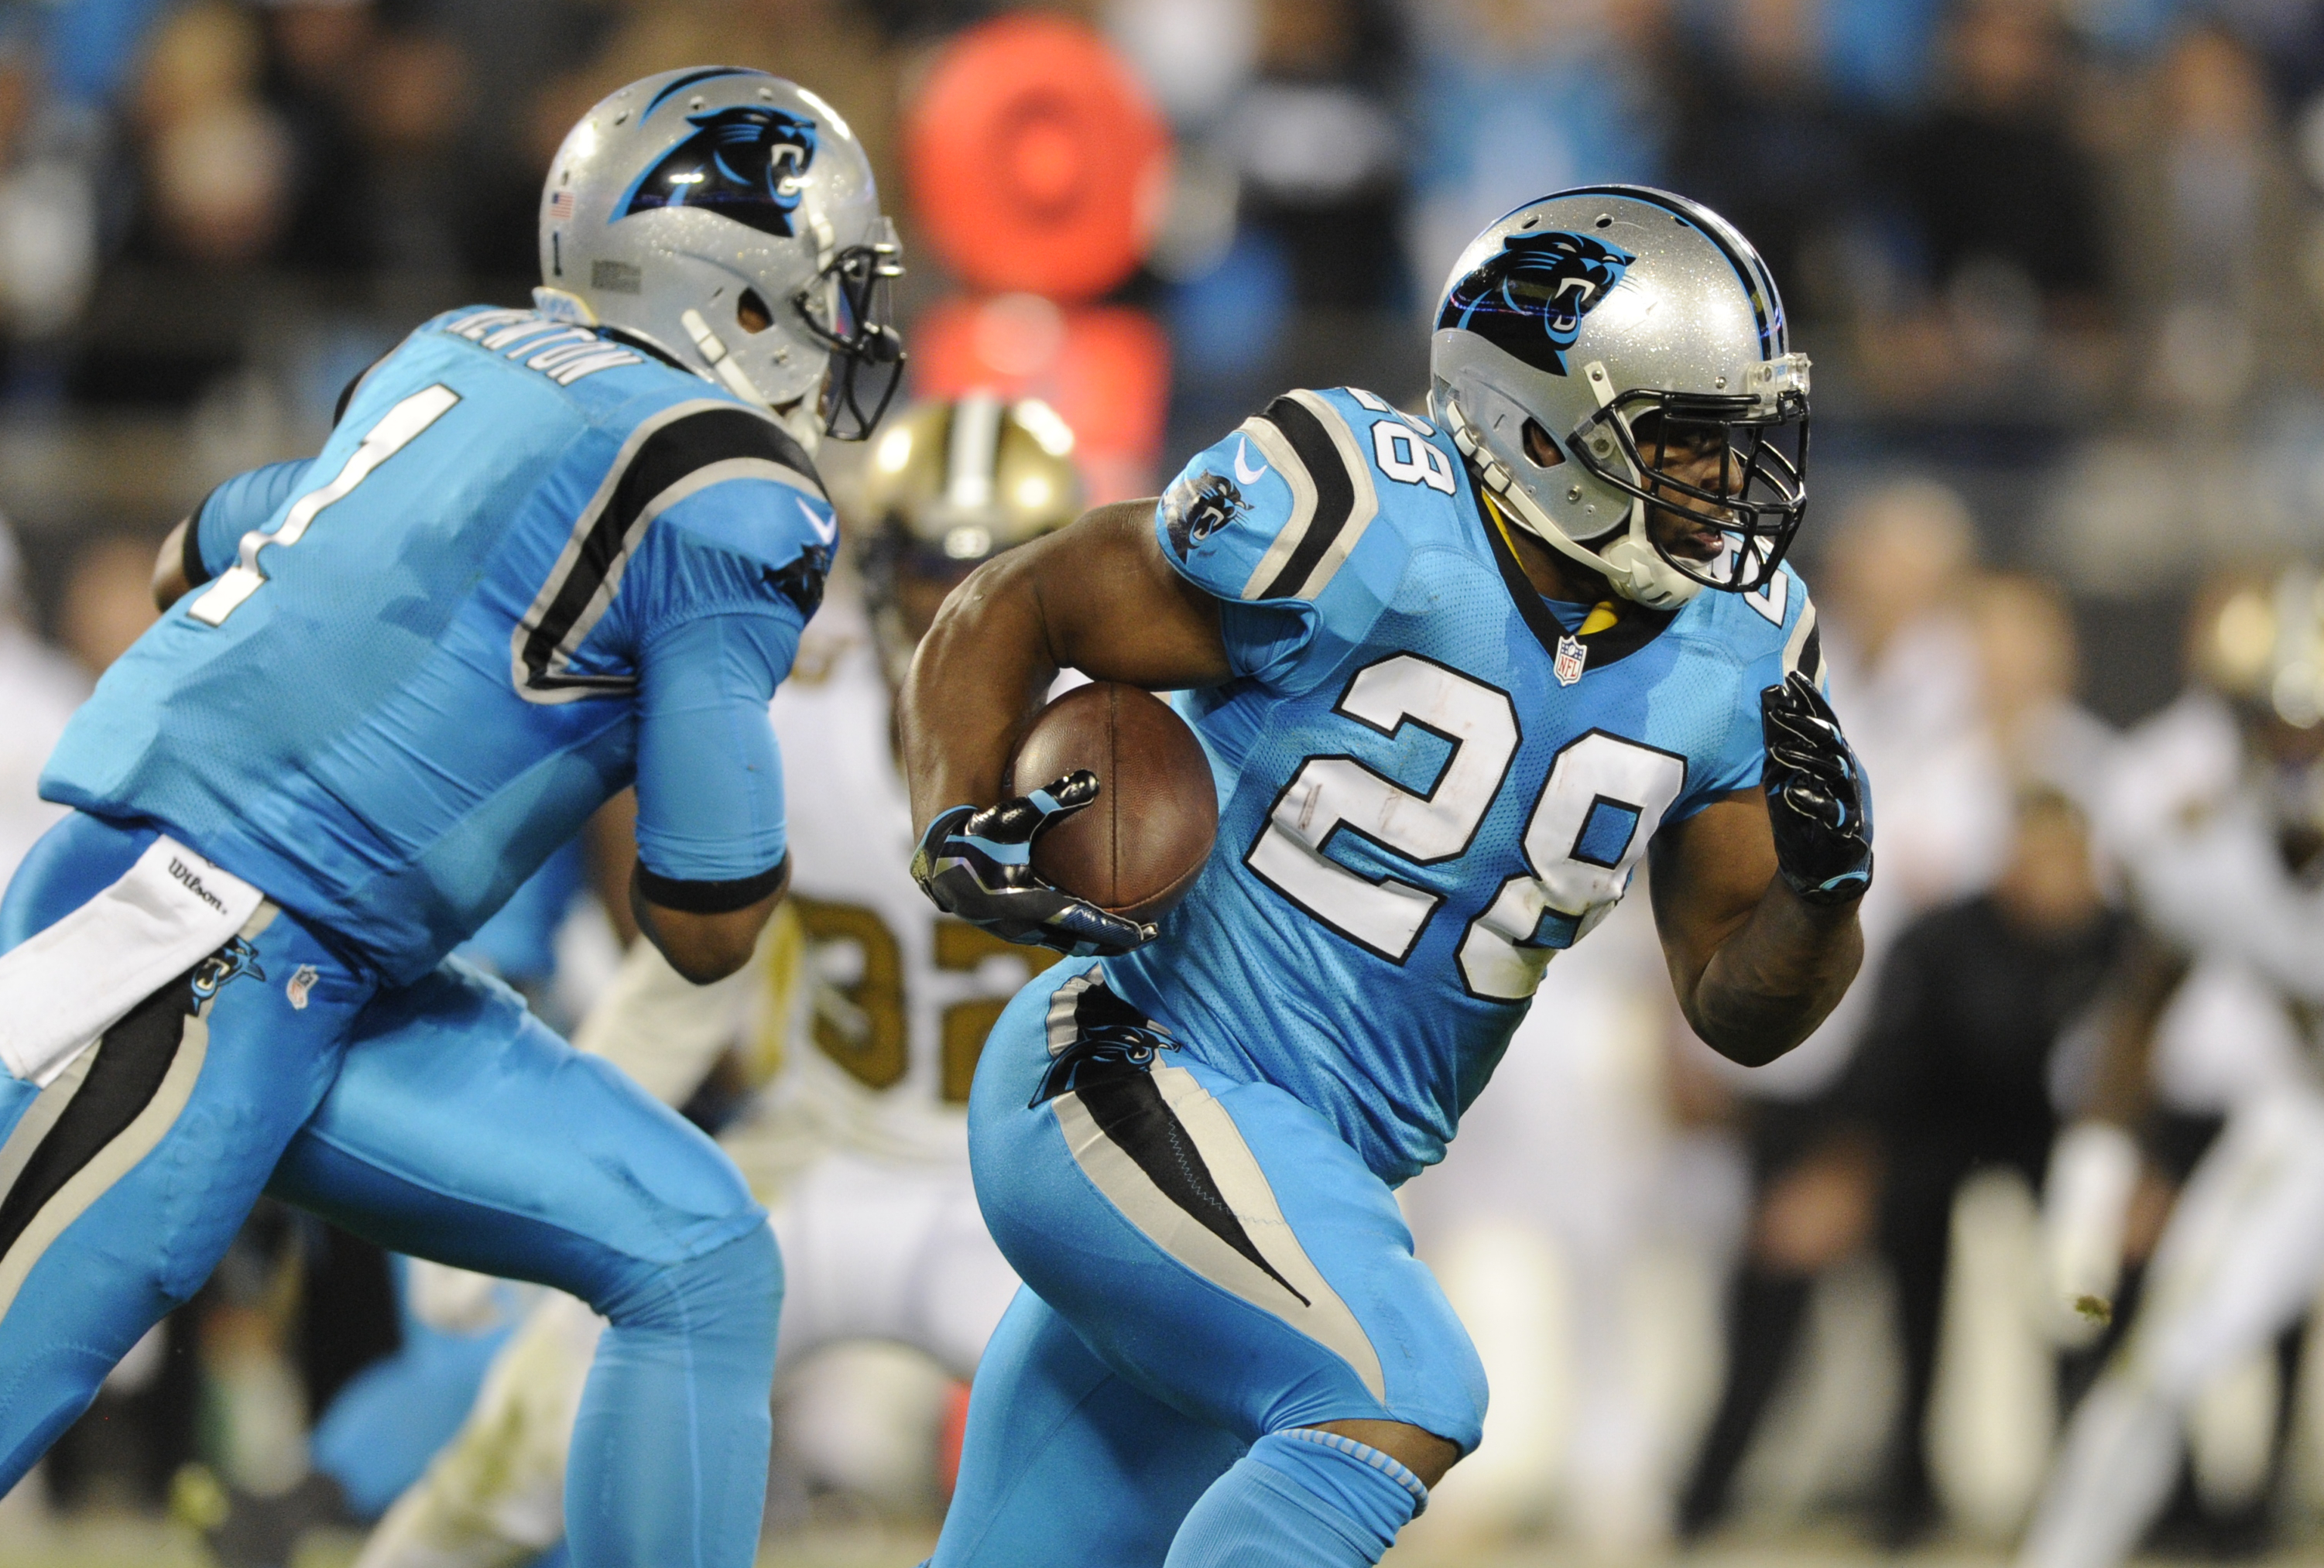 FILE - In this Nov. 17, 2016, file photo, Carolina Panthers' Jonathan Stewart (28) runs against the New Orleans Saints during an NFL football game in Charlotte, N.C. At left is quarterback Cam Newton. The Panthers play the Oakland Raiders this week. The P